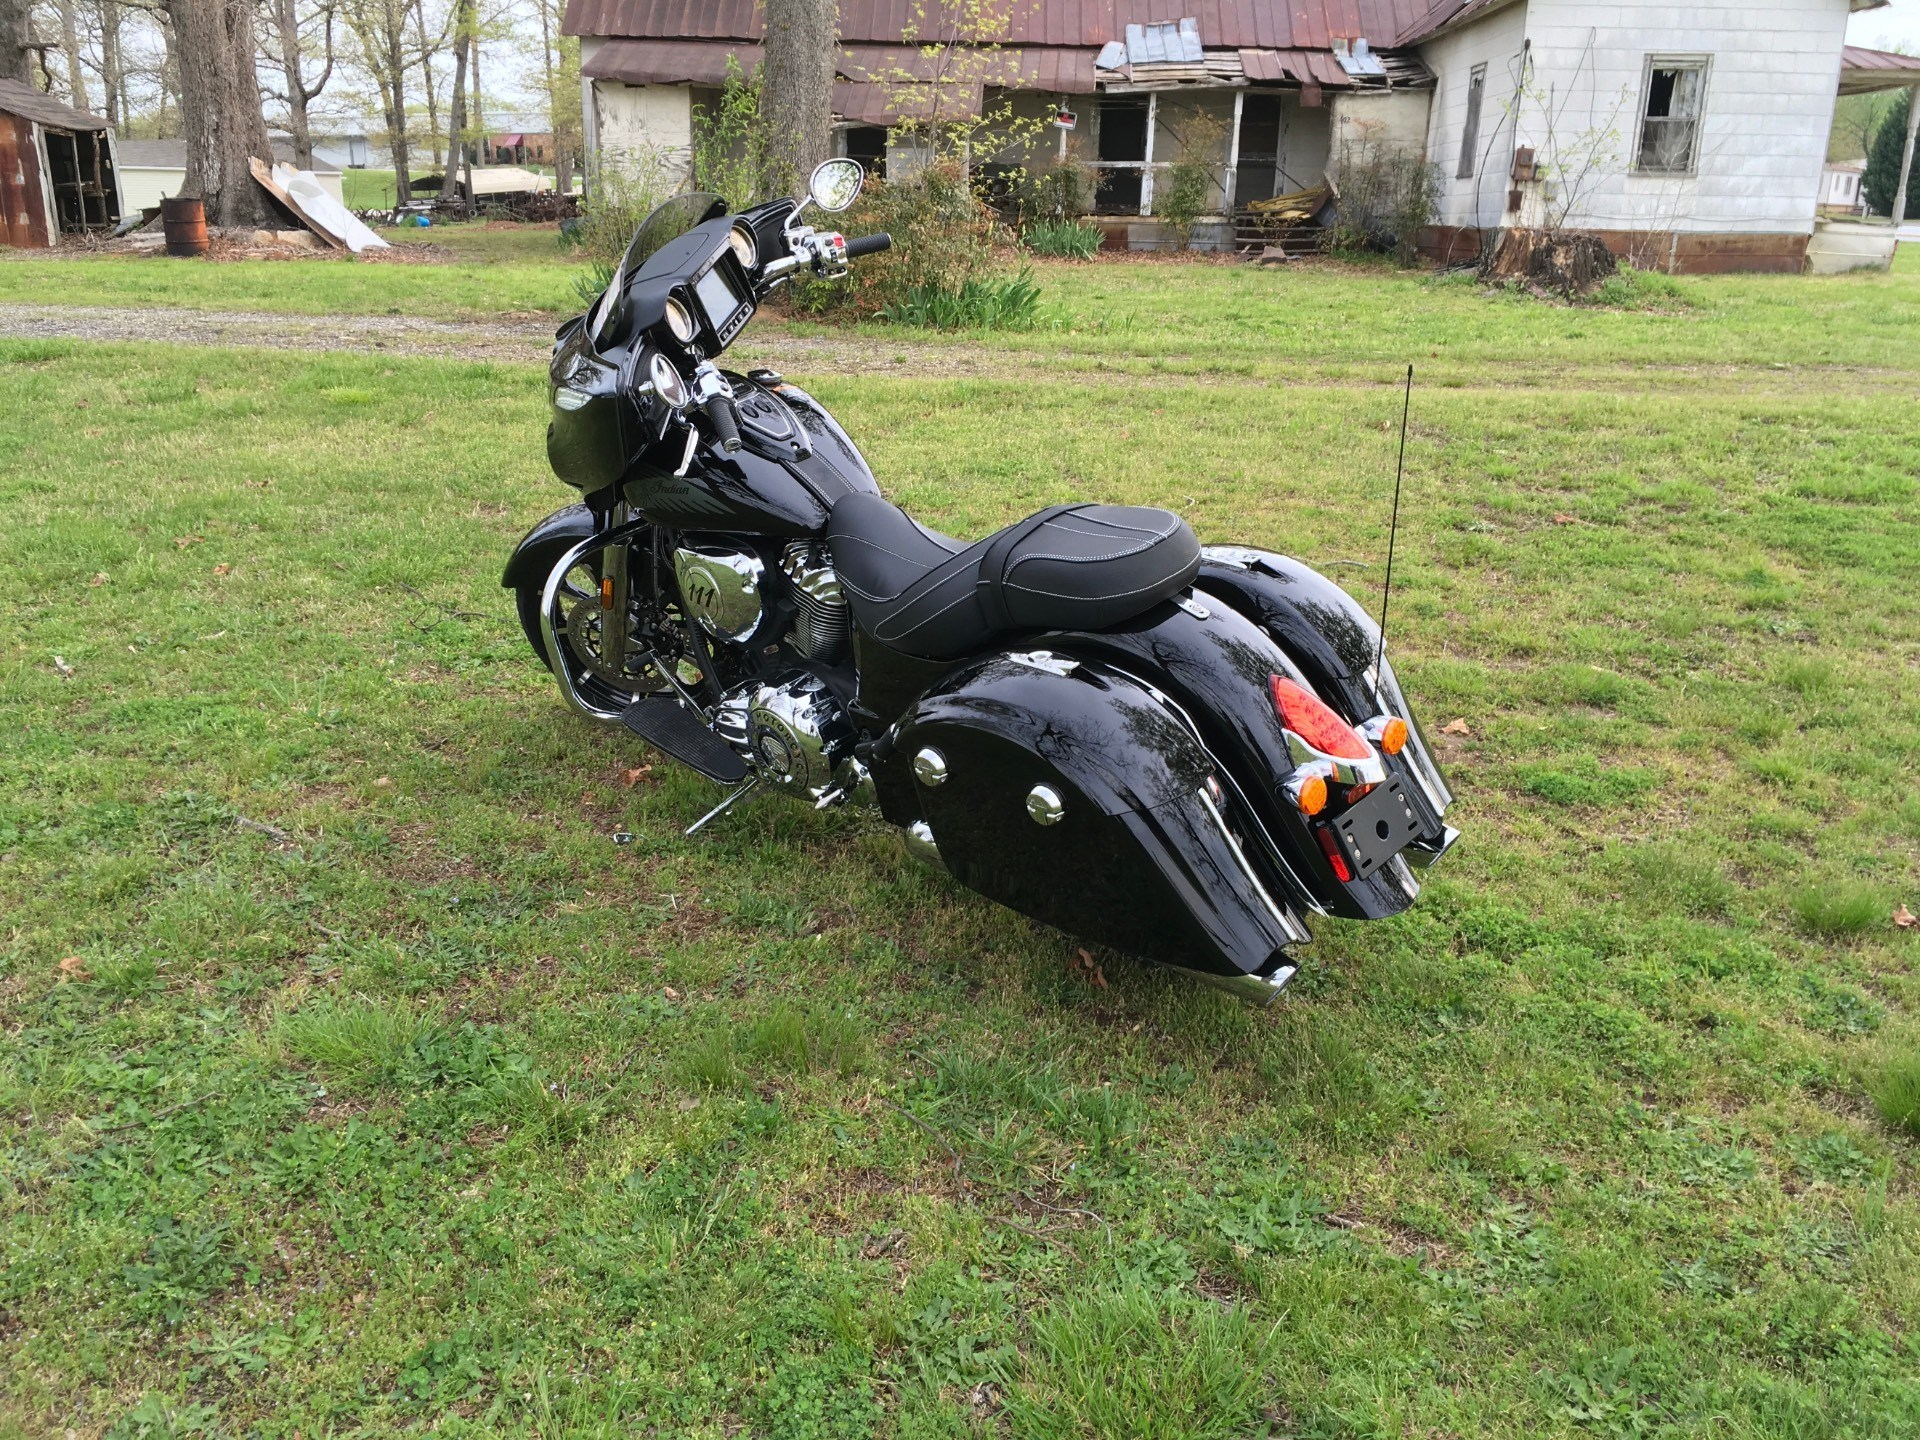 2017 Indian Chieftain Limited 9